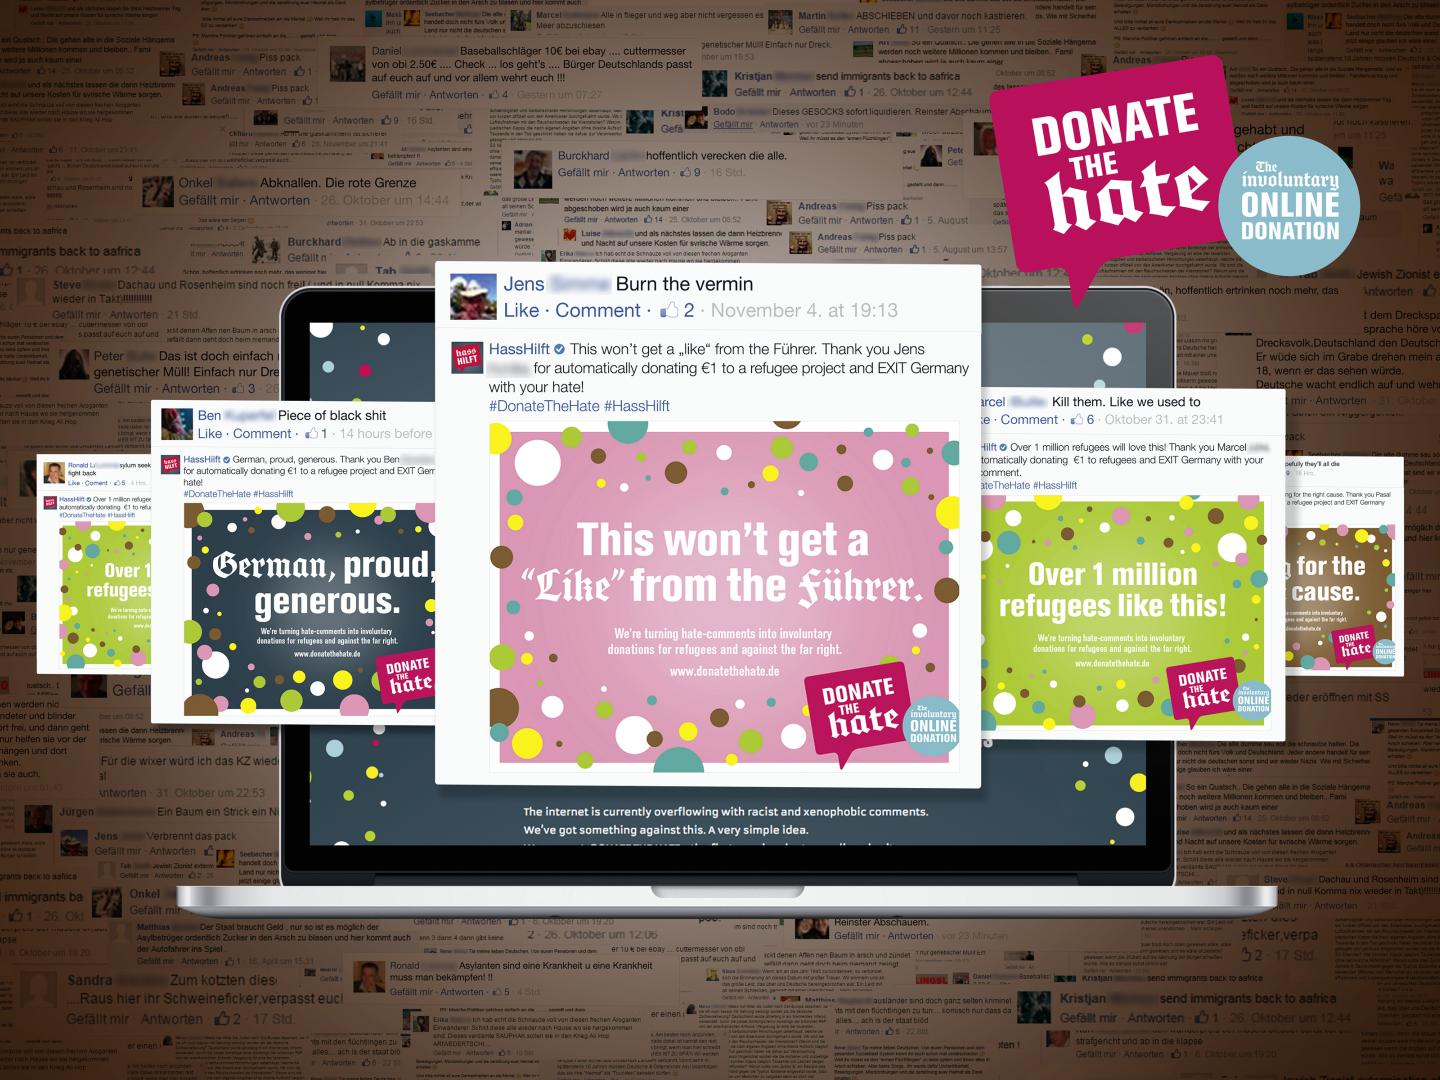 Donate The Hate - The Involuntary Online Donation Thumbnail